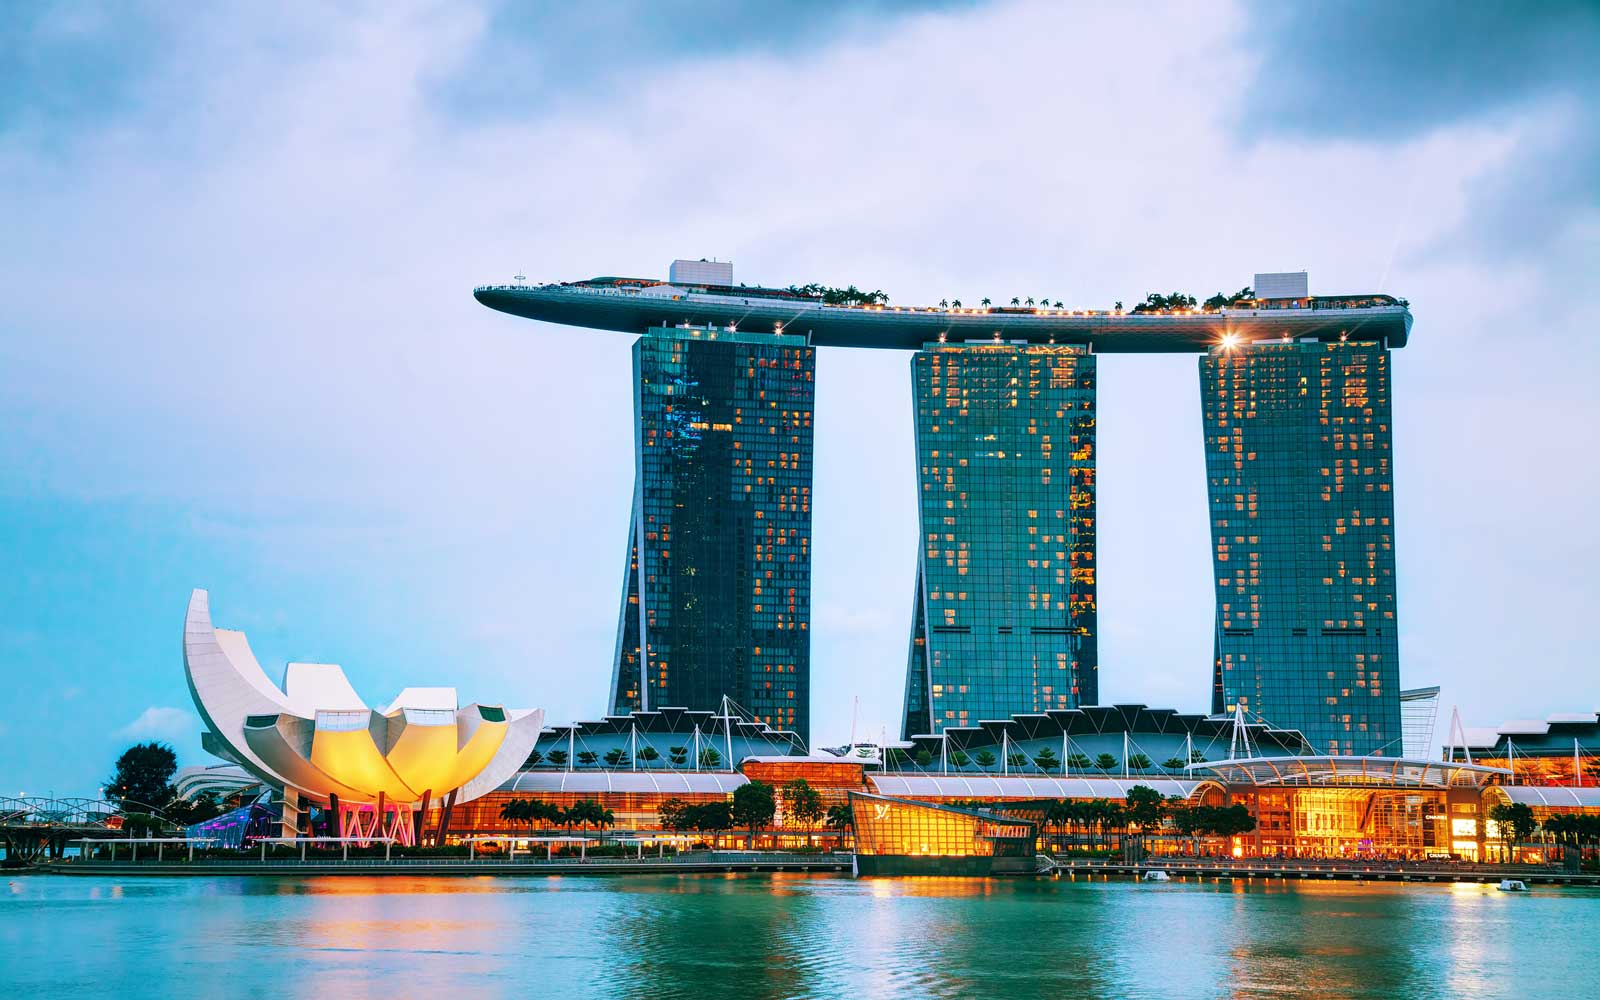 Overview of Singapore with Marina Bay Sands